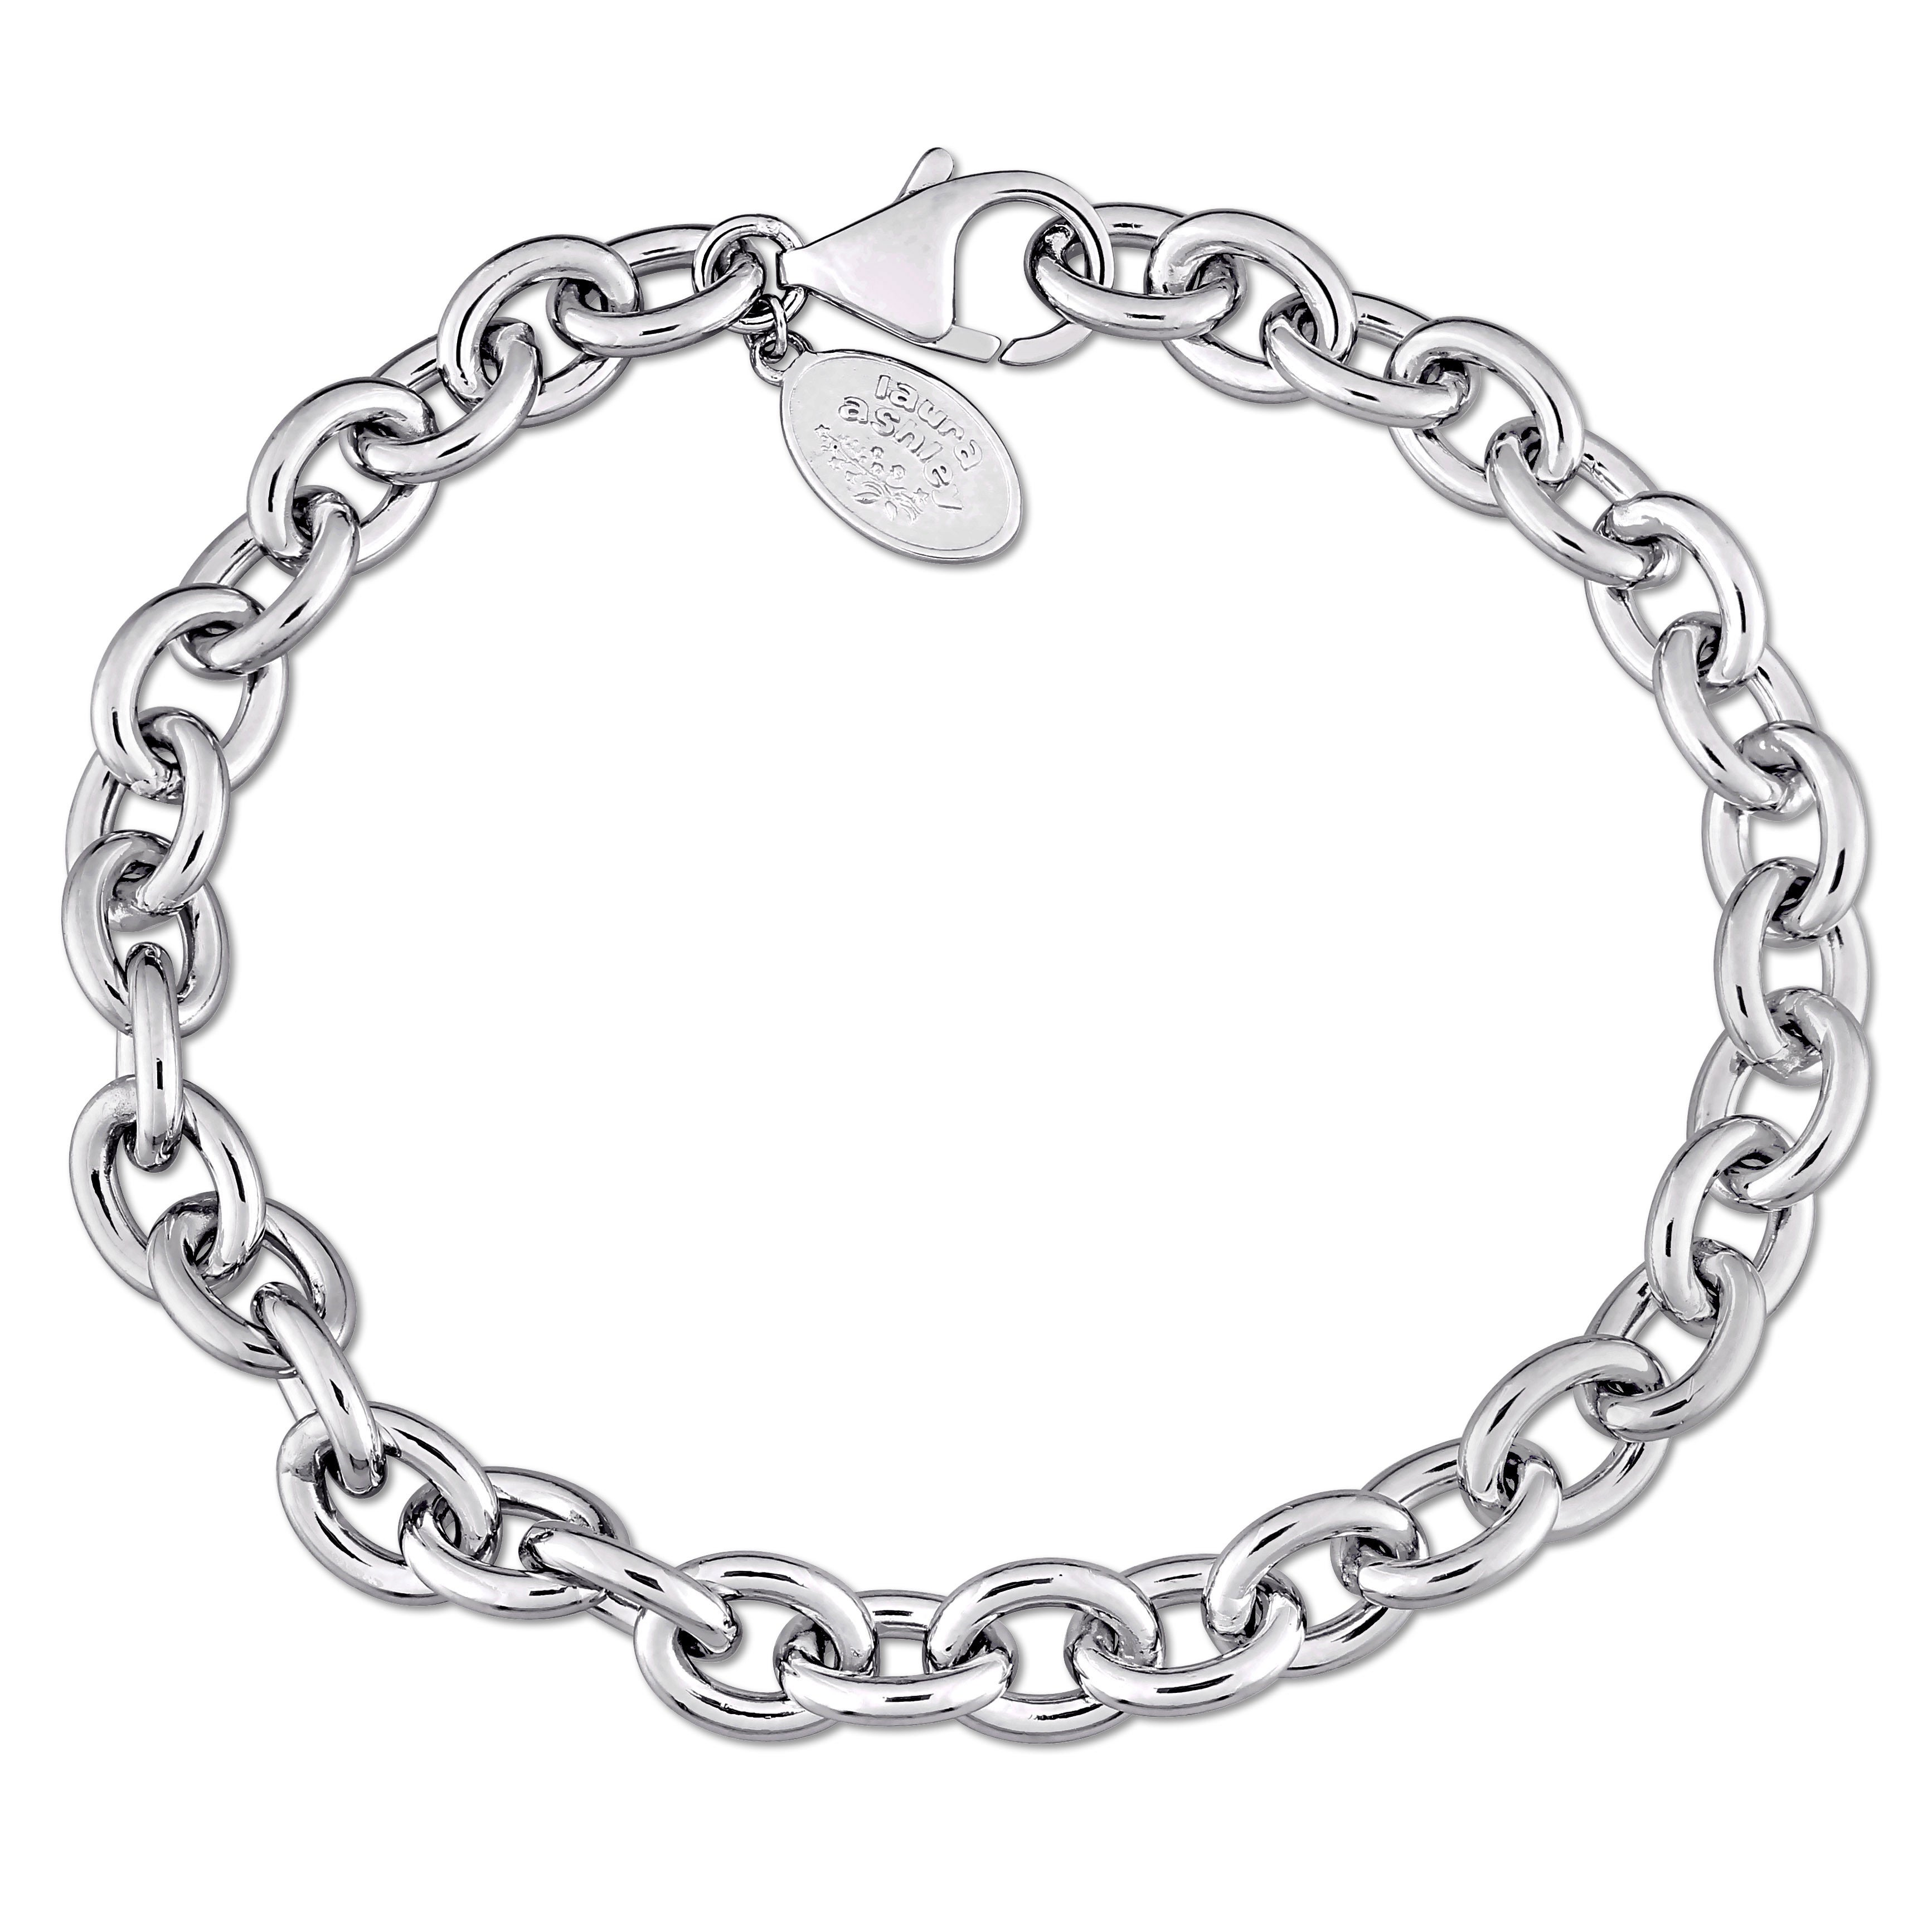 Anklets Jewelry & Watches Platinum Sterling Silver White Sapphire Heart Clover Star Design Ankle Bracelet Refreshment